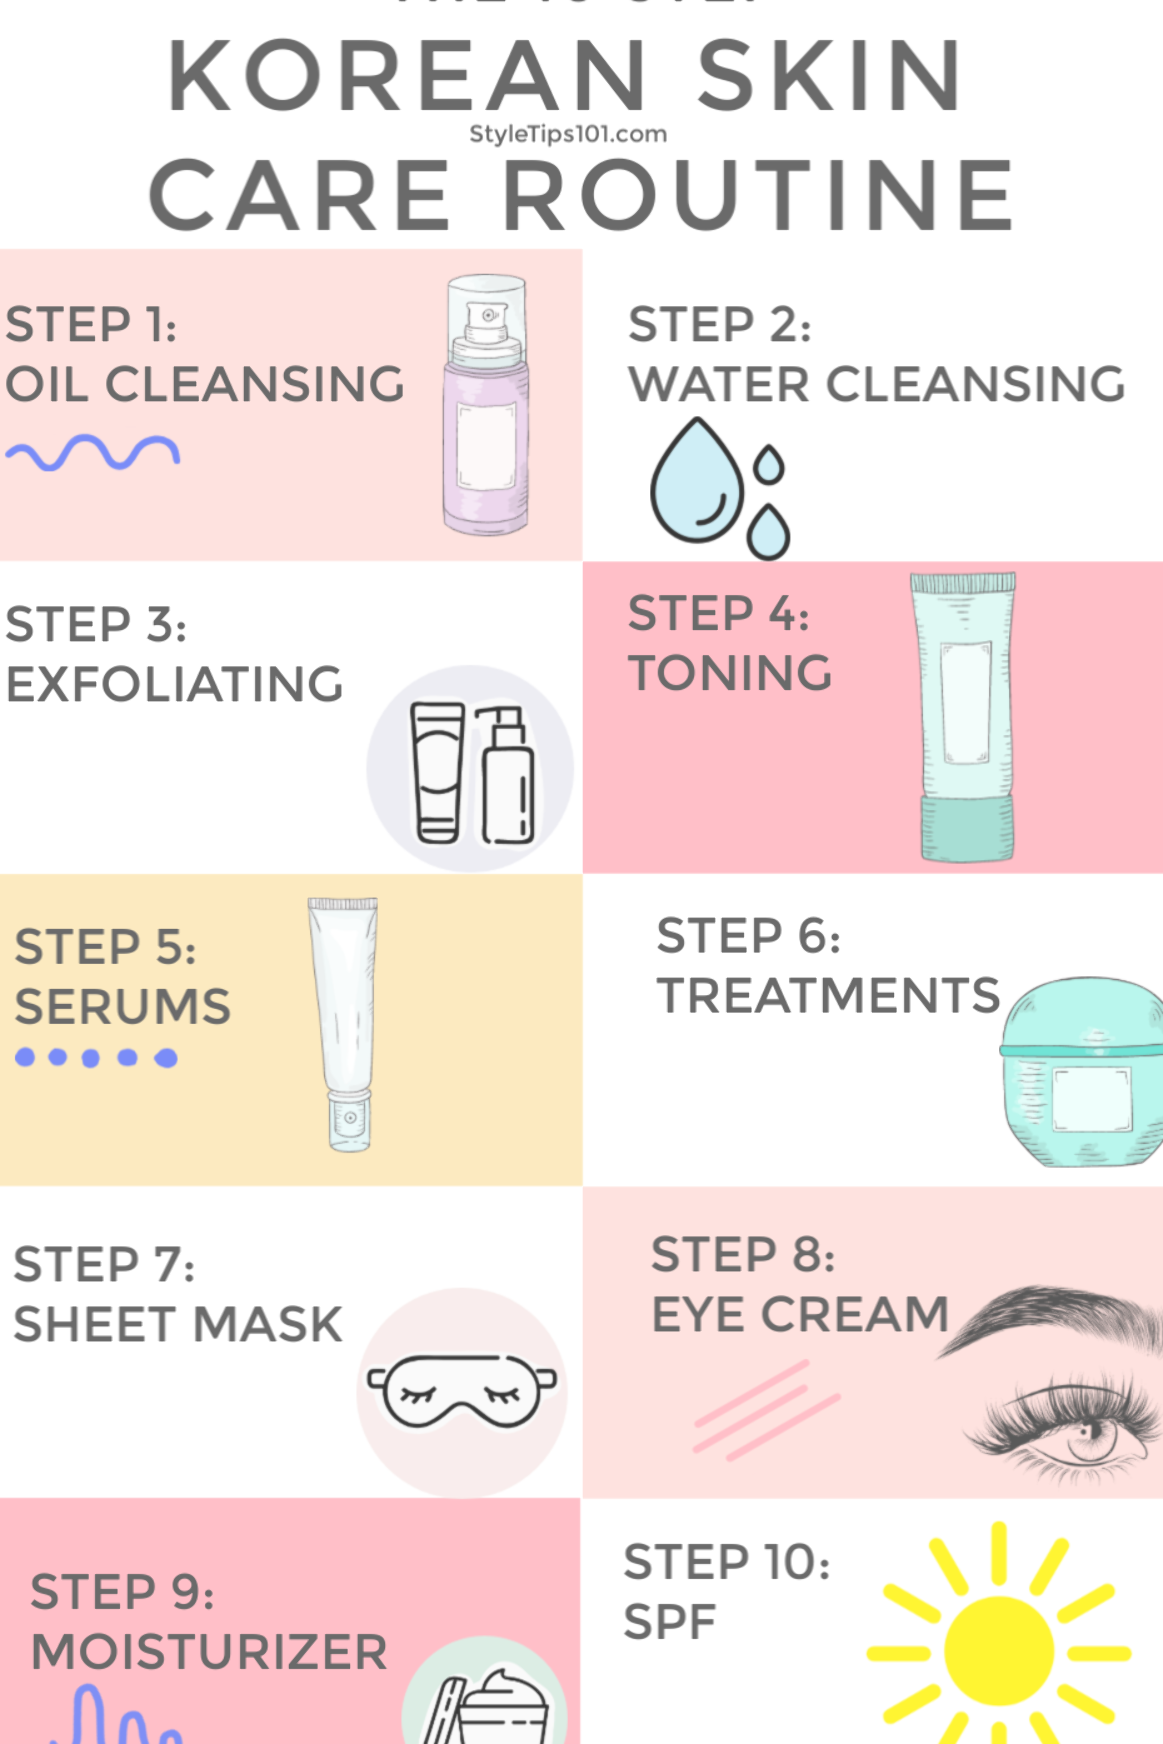 Korean Skin Care Routine Korean Skincare Routine Facial Skin Care Routine Skin Care Routine